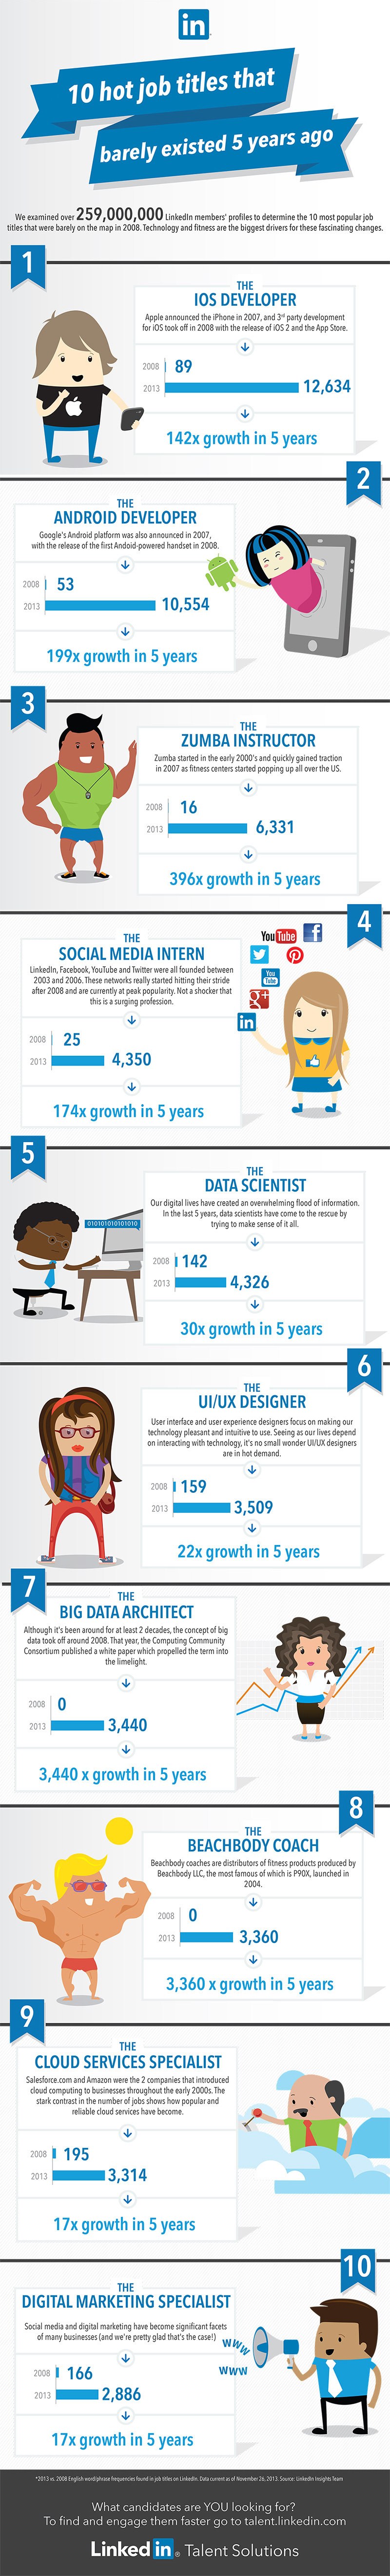 Top 10 Job Titles That Didn't Exist 5 Years Ago #Infographic